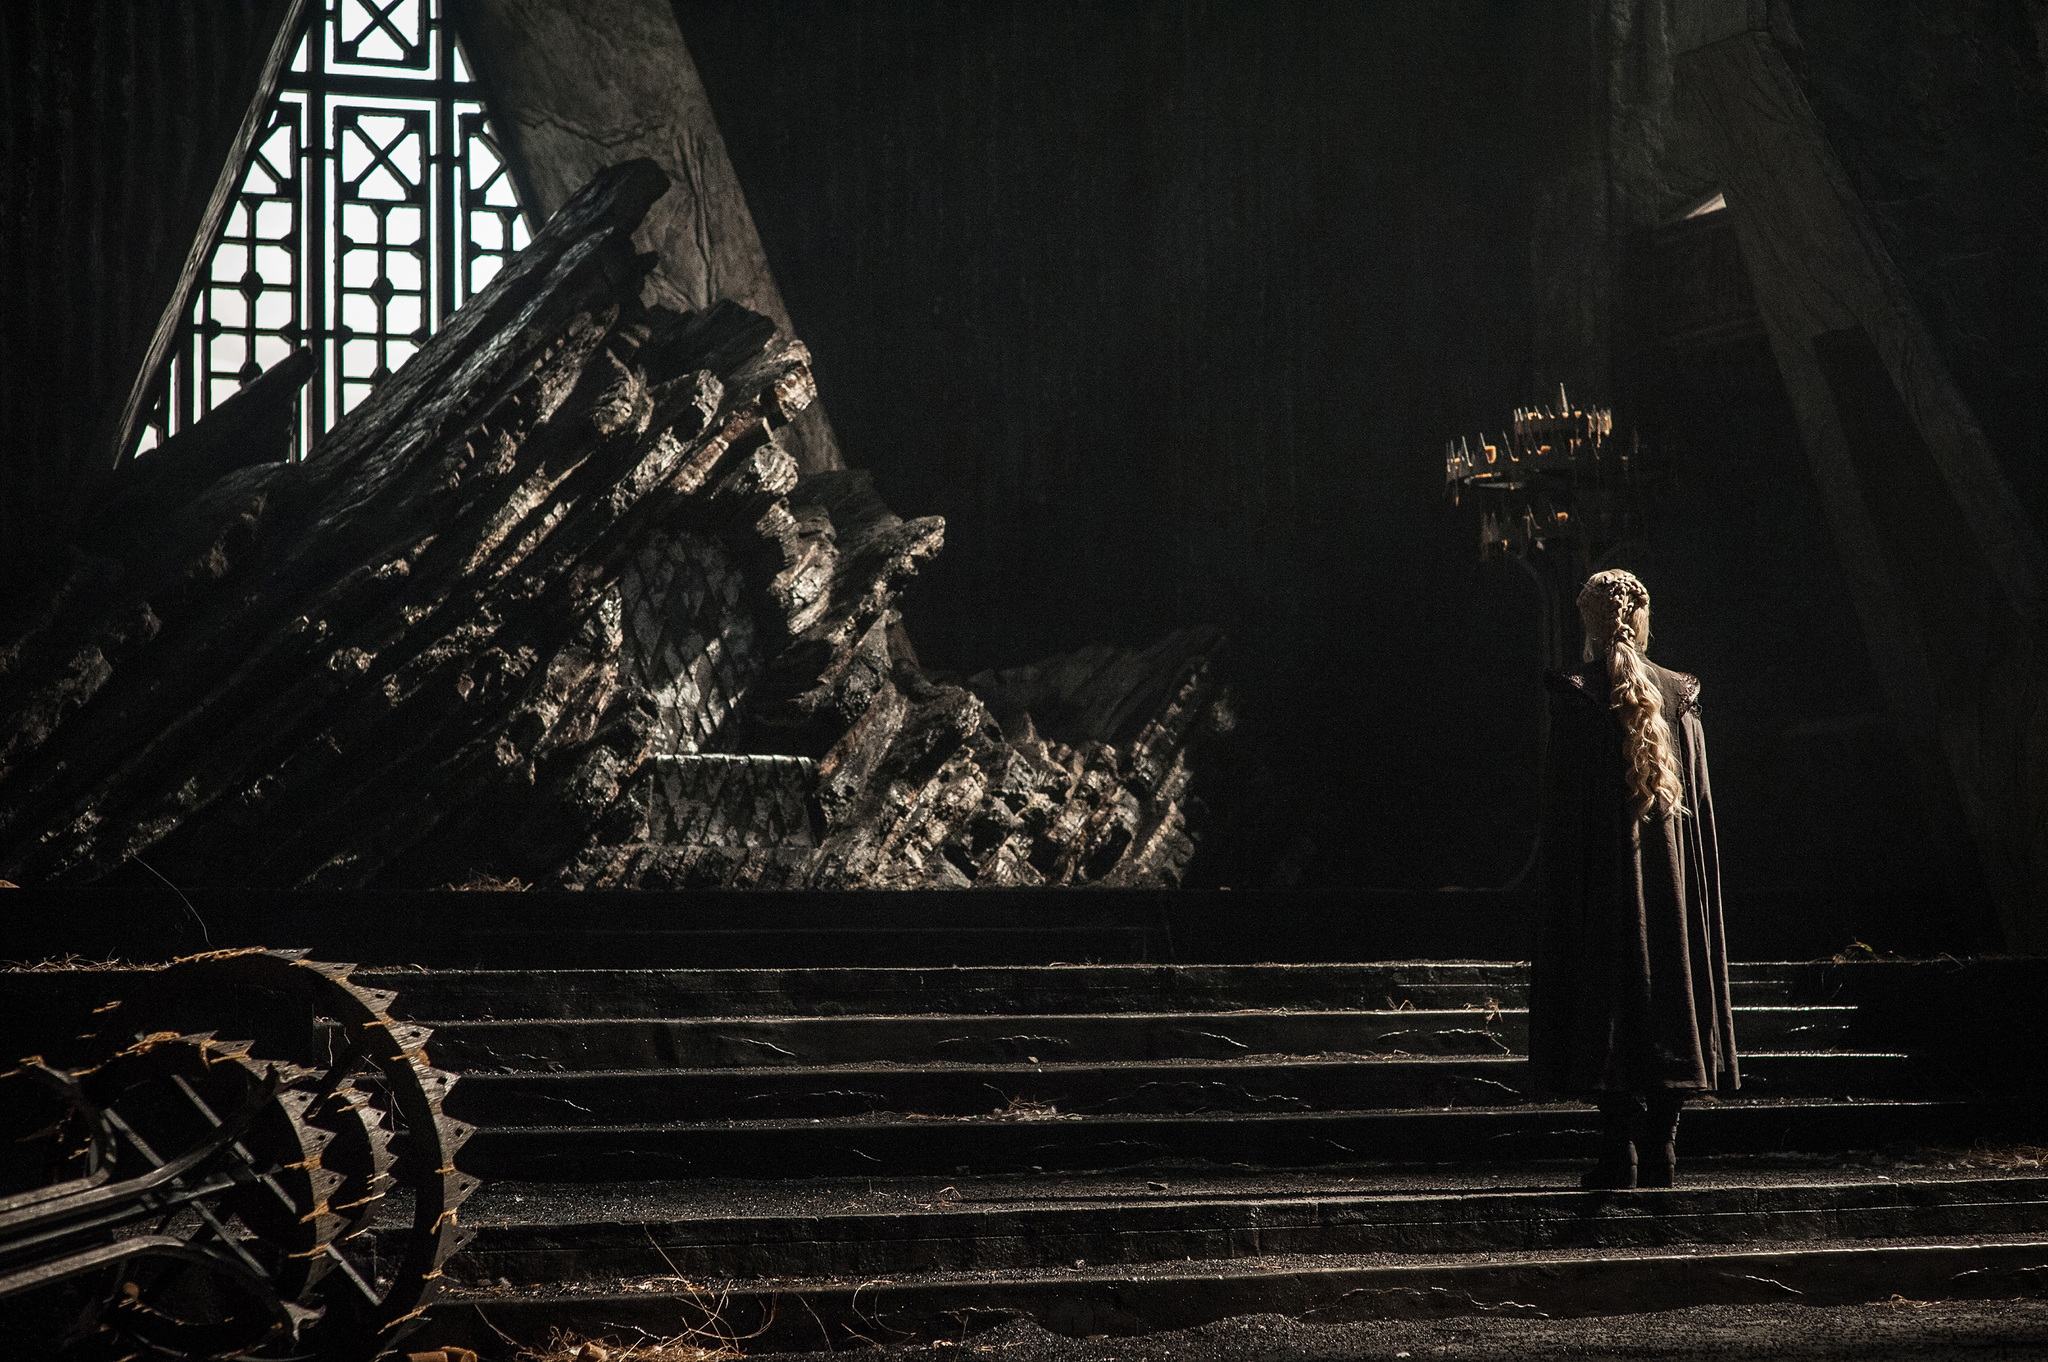 game of thrones s07e01 torrent download